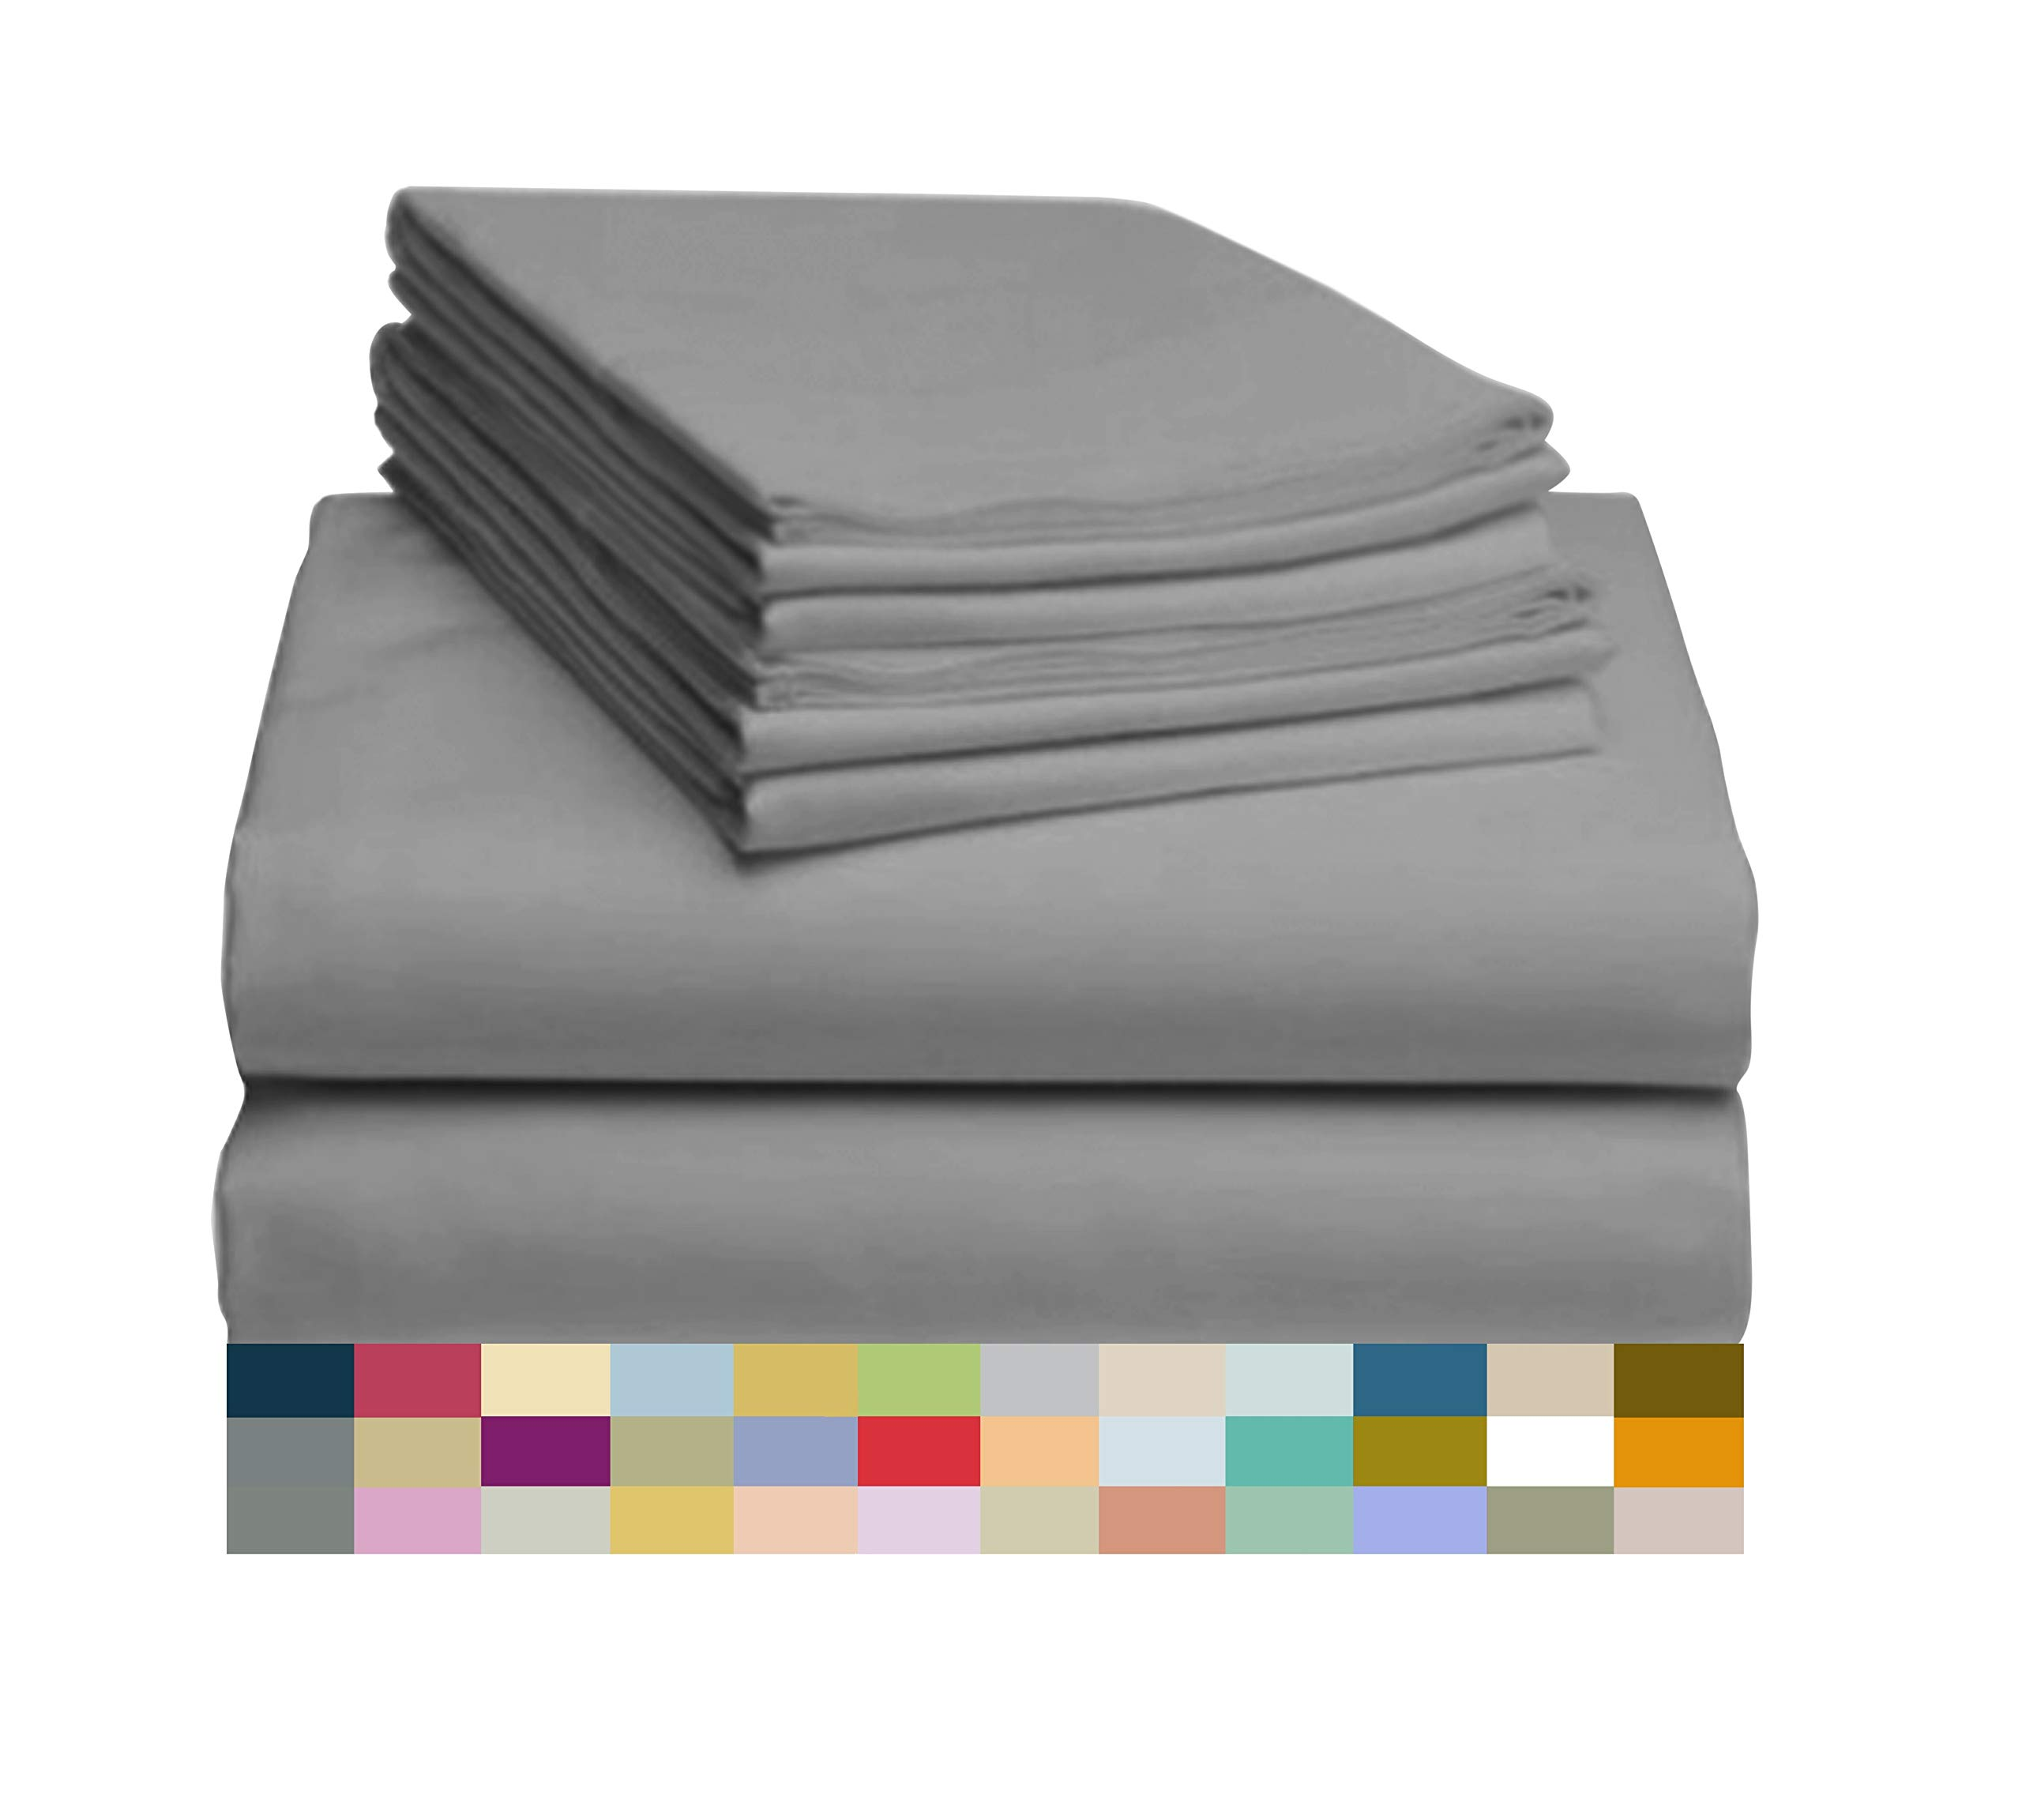 LuxClub 6 PC Bamboo Sheet Set w/ 18 inch Deep Pockets - Eco Friendly, Wrinkle Free, Hypoallergentic, Antibacterial, Fade Resistant, Silky, Stronger & Softer Than Cotton -Silver California King